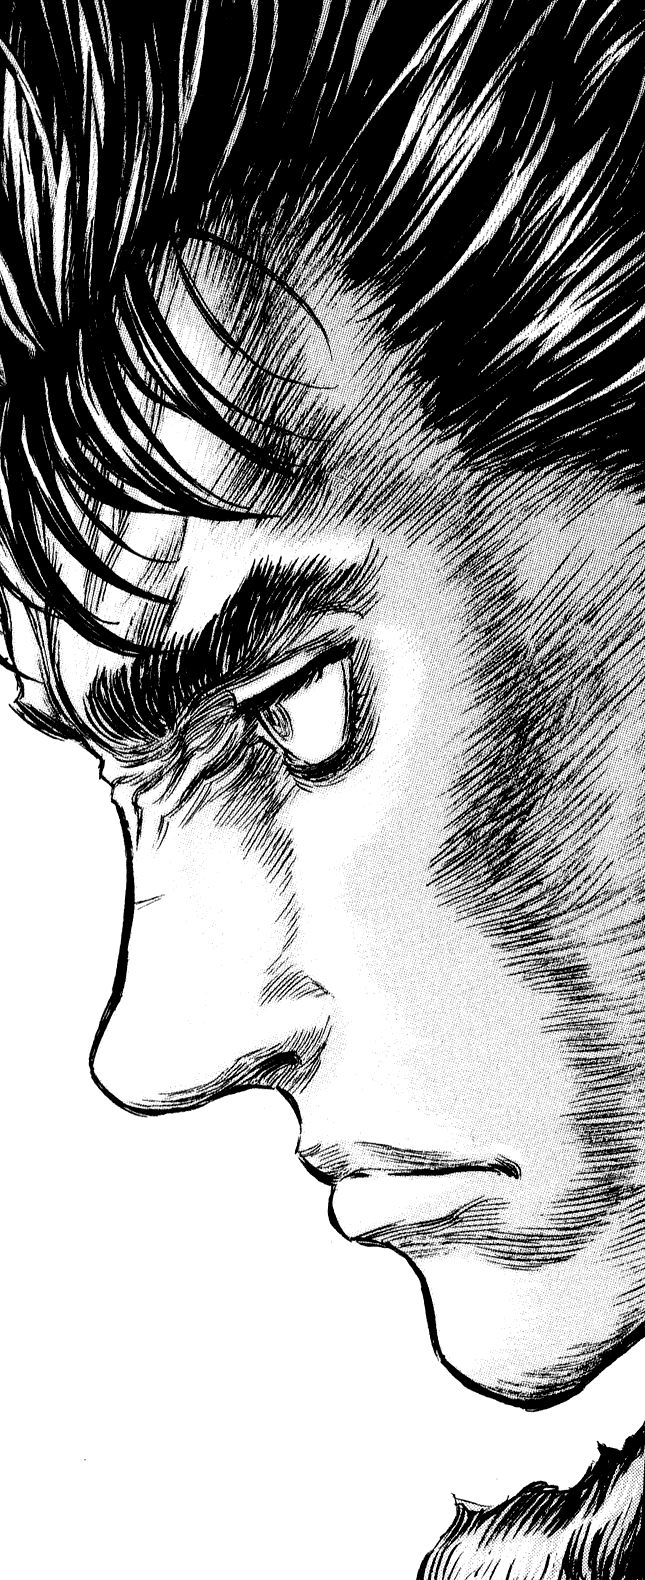 Berserk - Guts (a.k.a. the most bad-ass and awesome protagonist ever!) Btw words can't  describe, just how much I love the artwork by Kentaro Miura <3